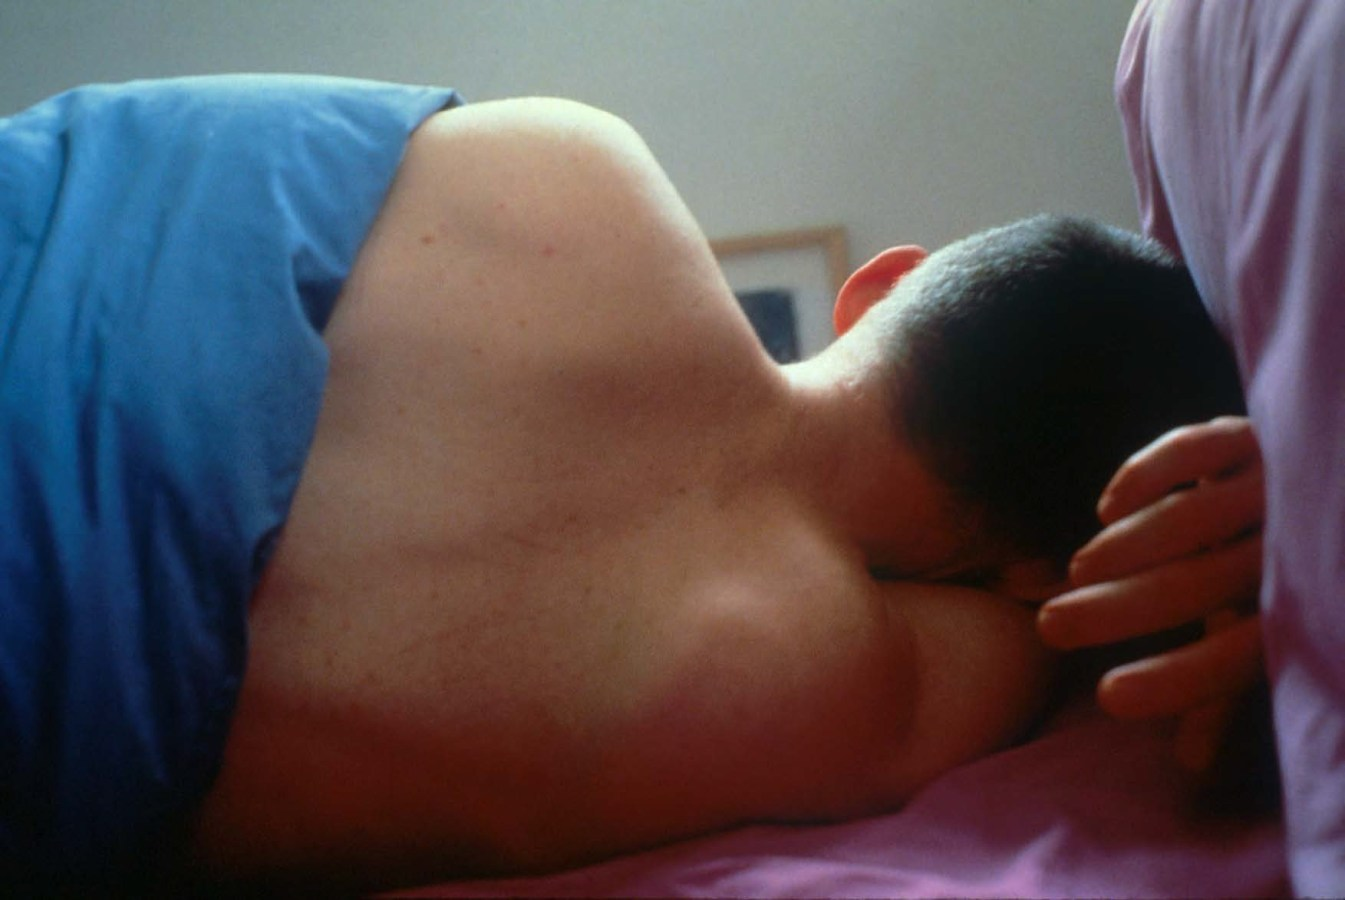 Color photograph of a person in bed with their back to the viewer